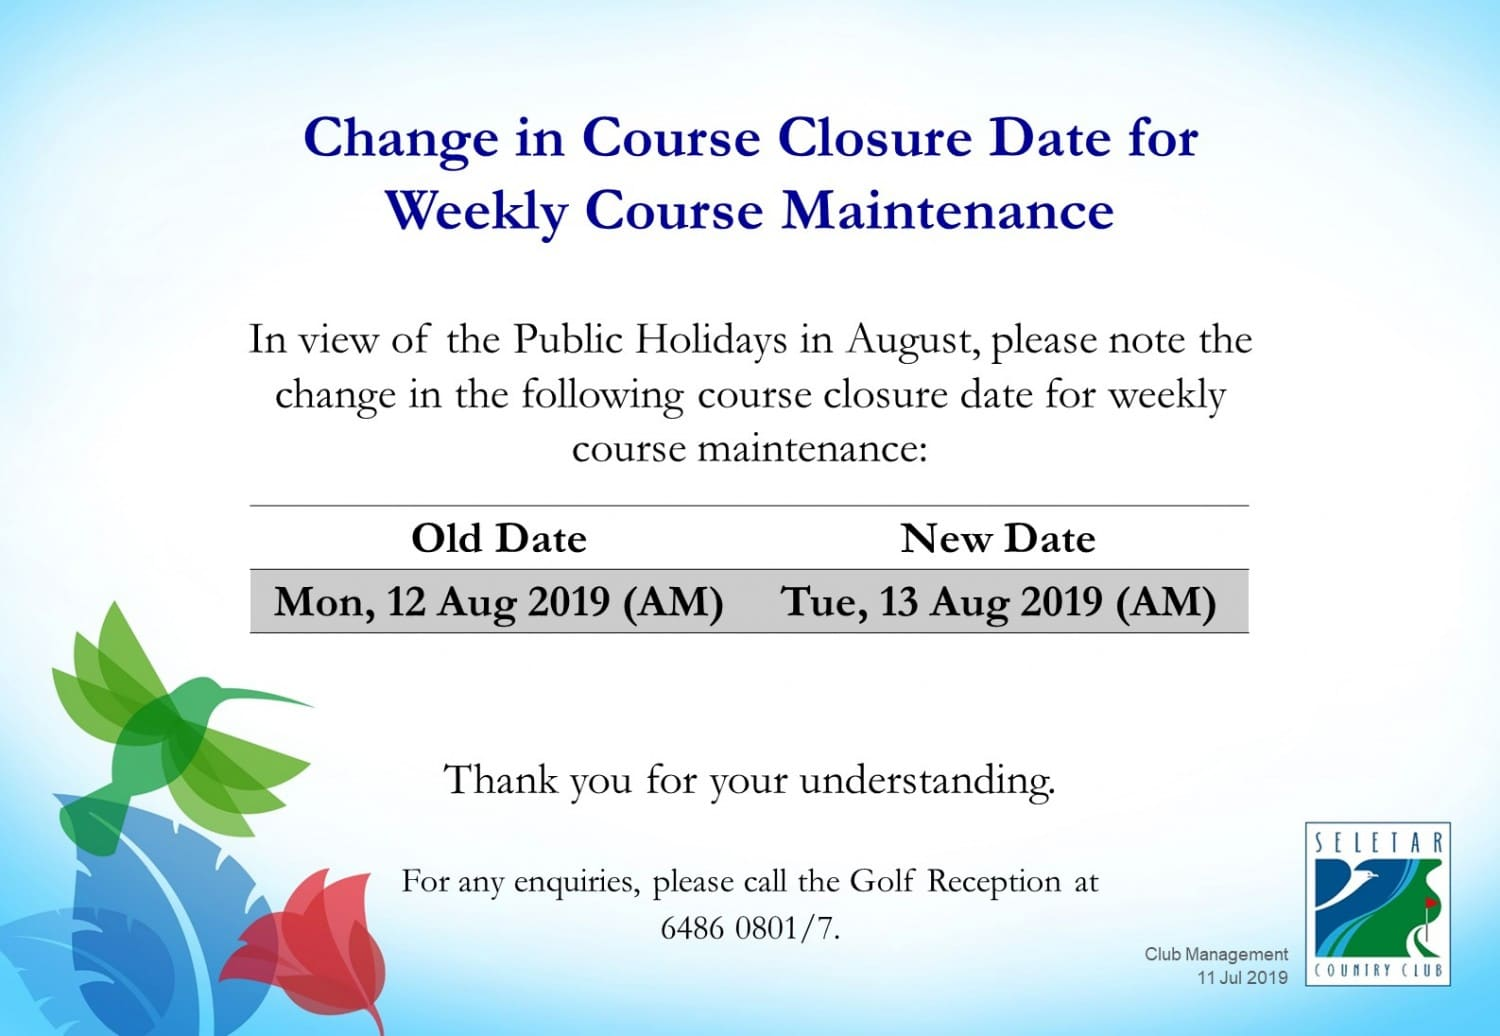 Changes in Aug weekly course maintenance dates